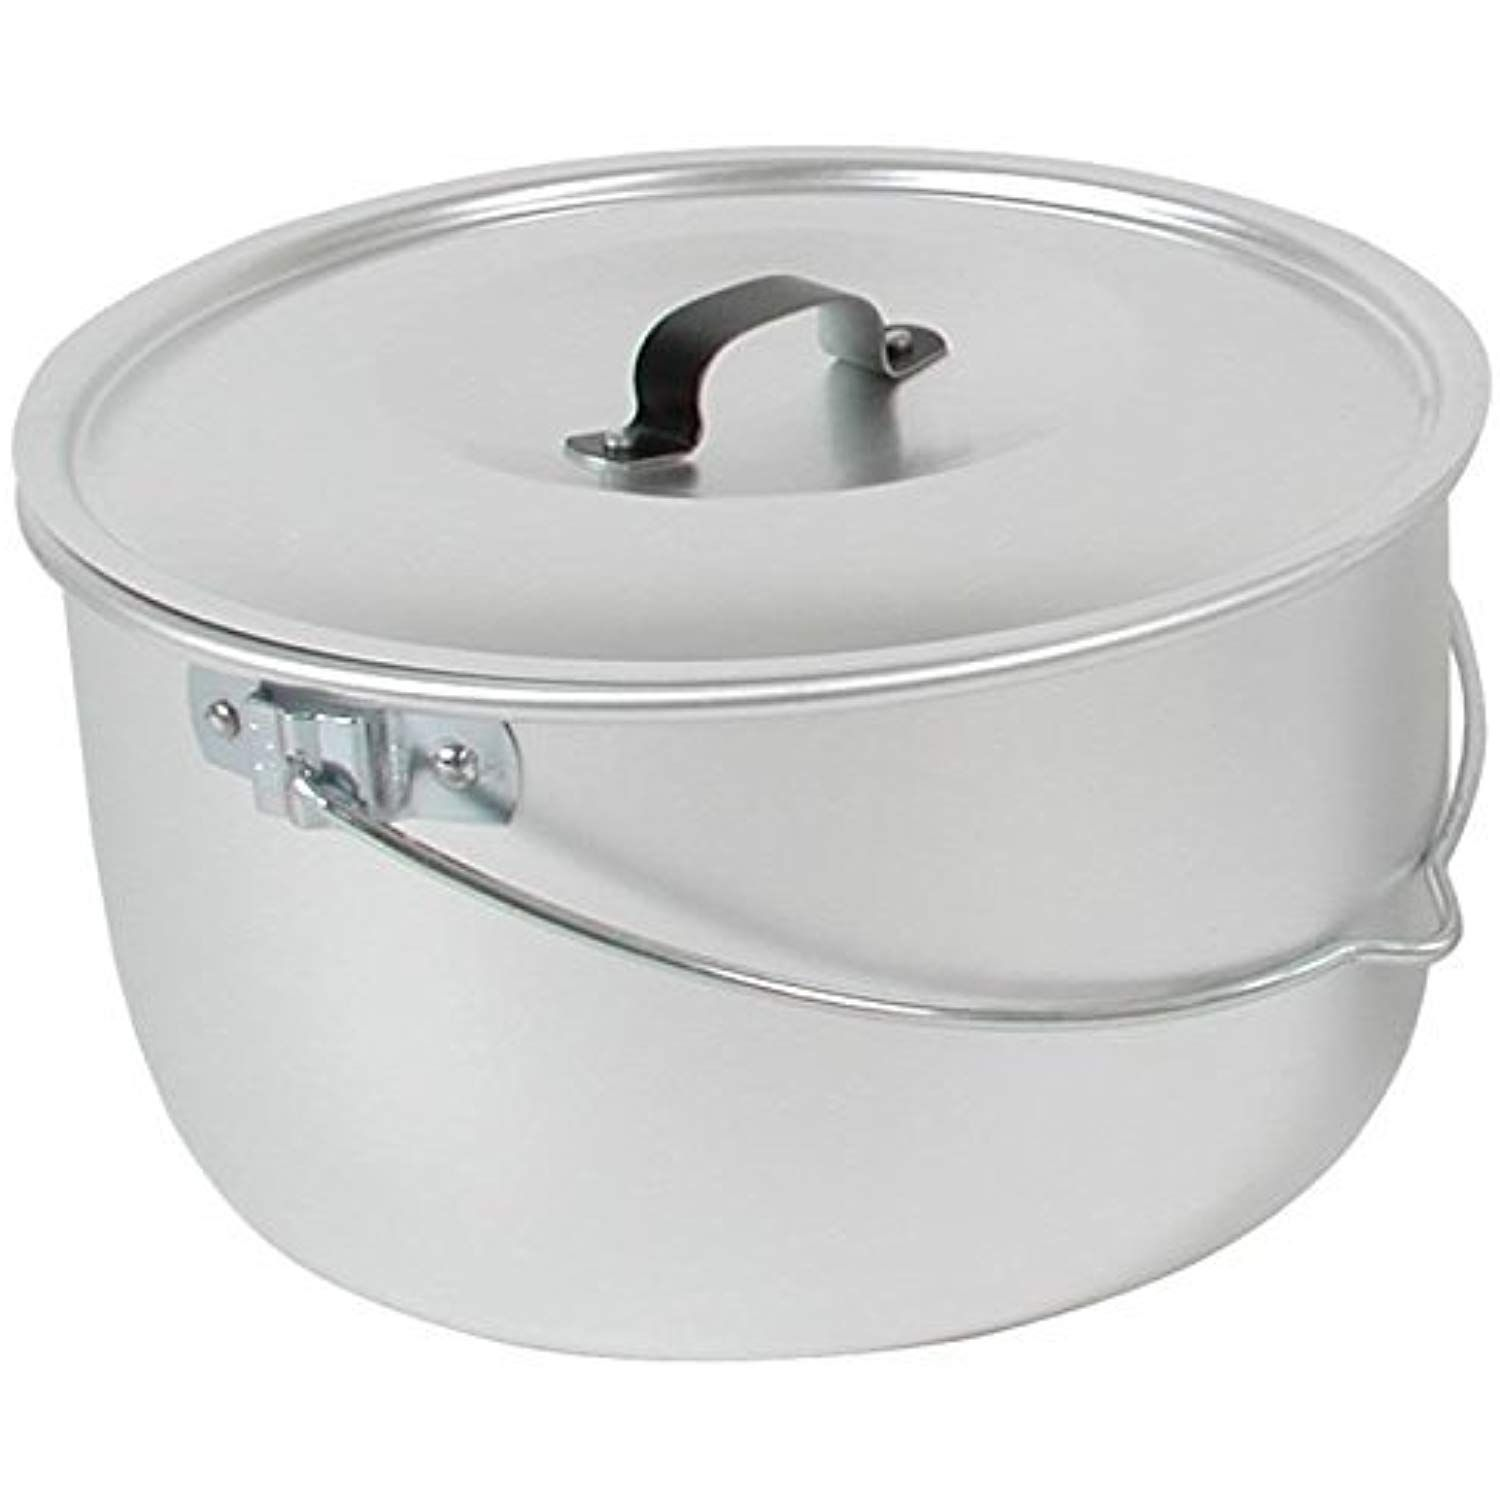 Trangia 4.5 Litre Billy Can Cooking Pot with Lid